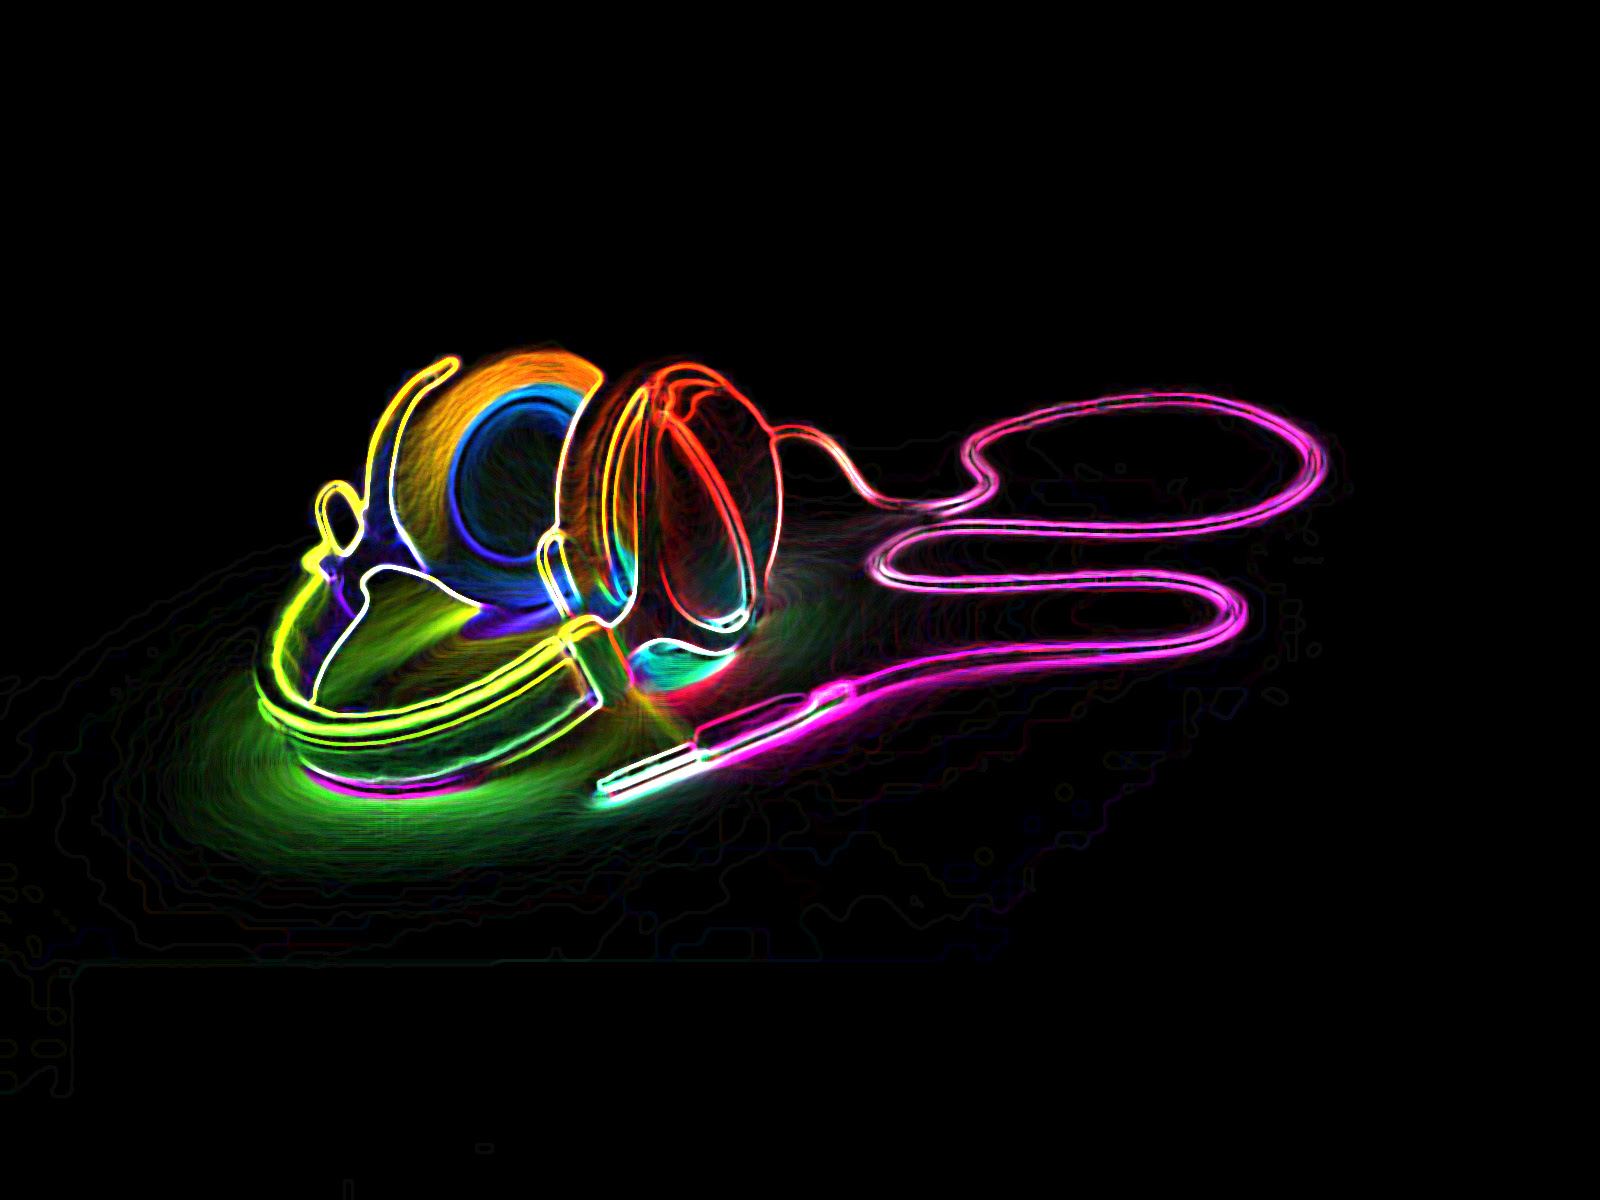 Headphones Wallpapers High Quality   Download Free